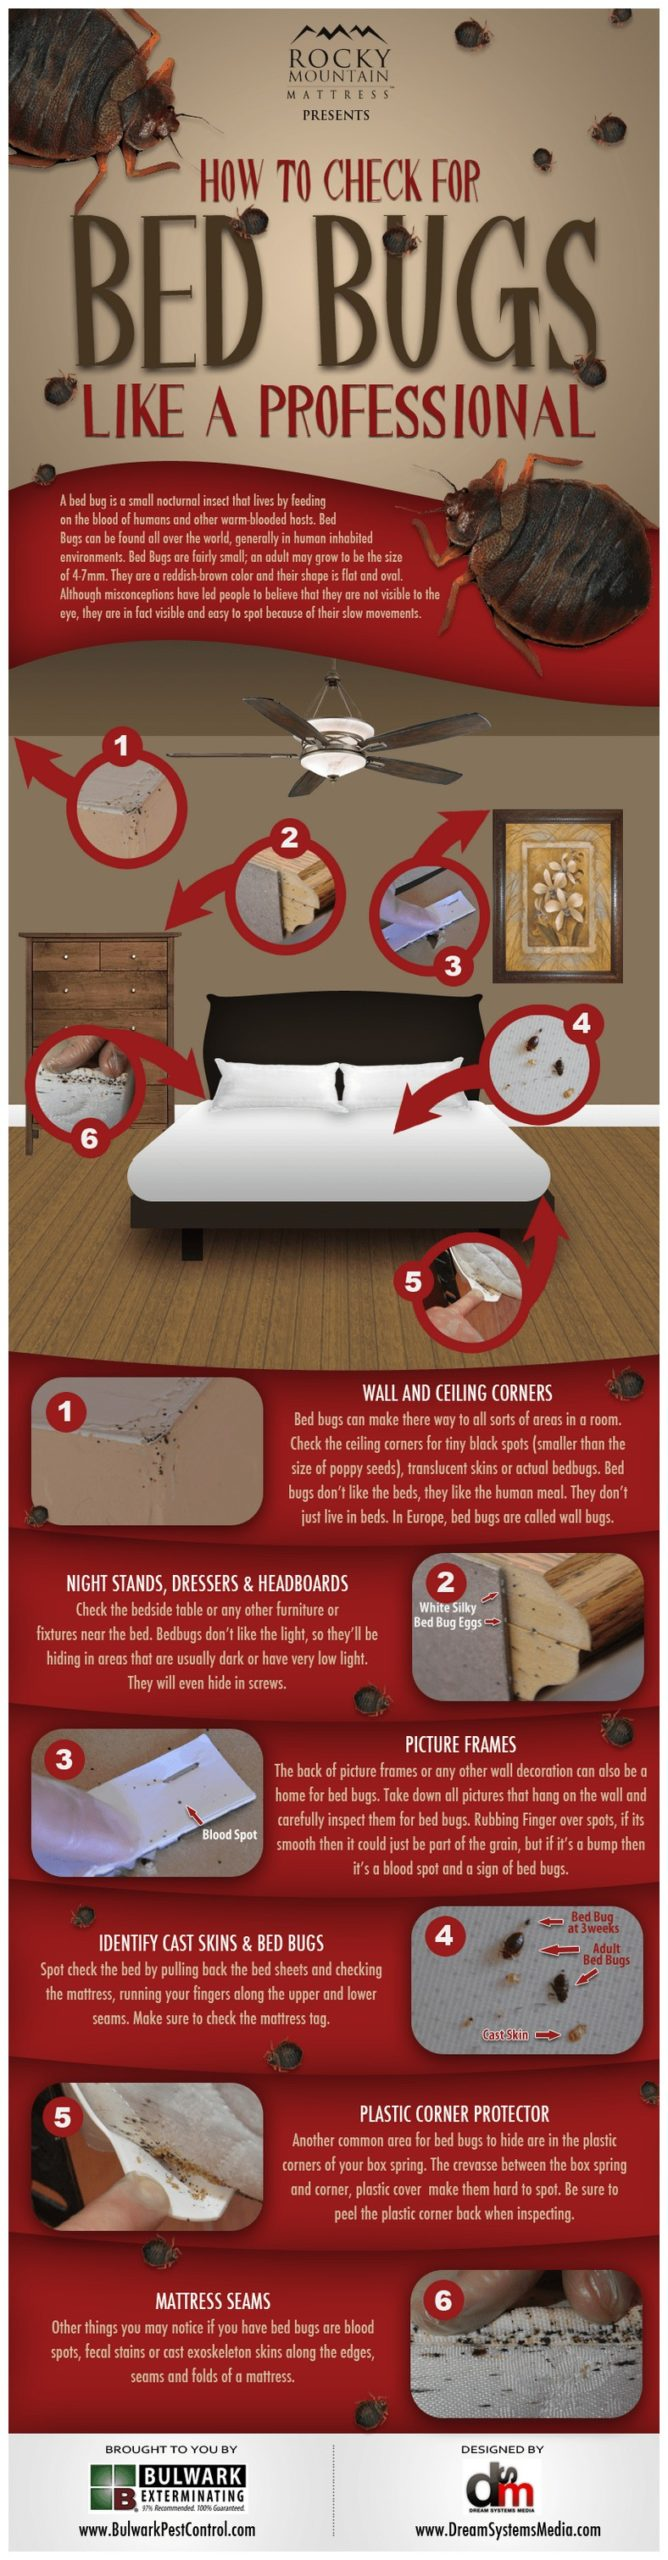 How To Get Rid Of Bed Bugs In A Mattress Naturally